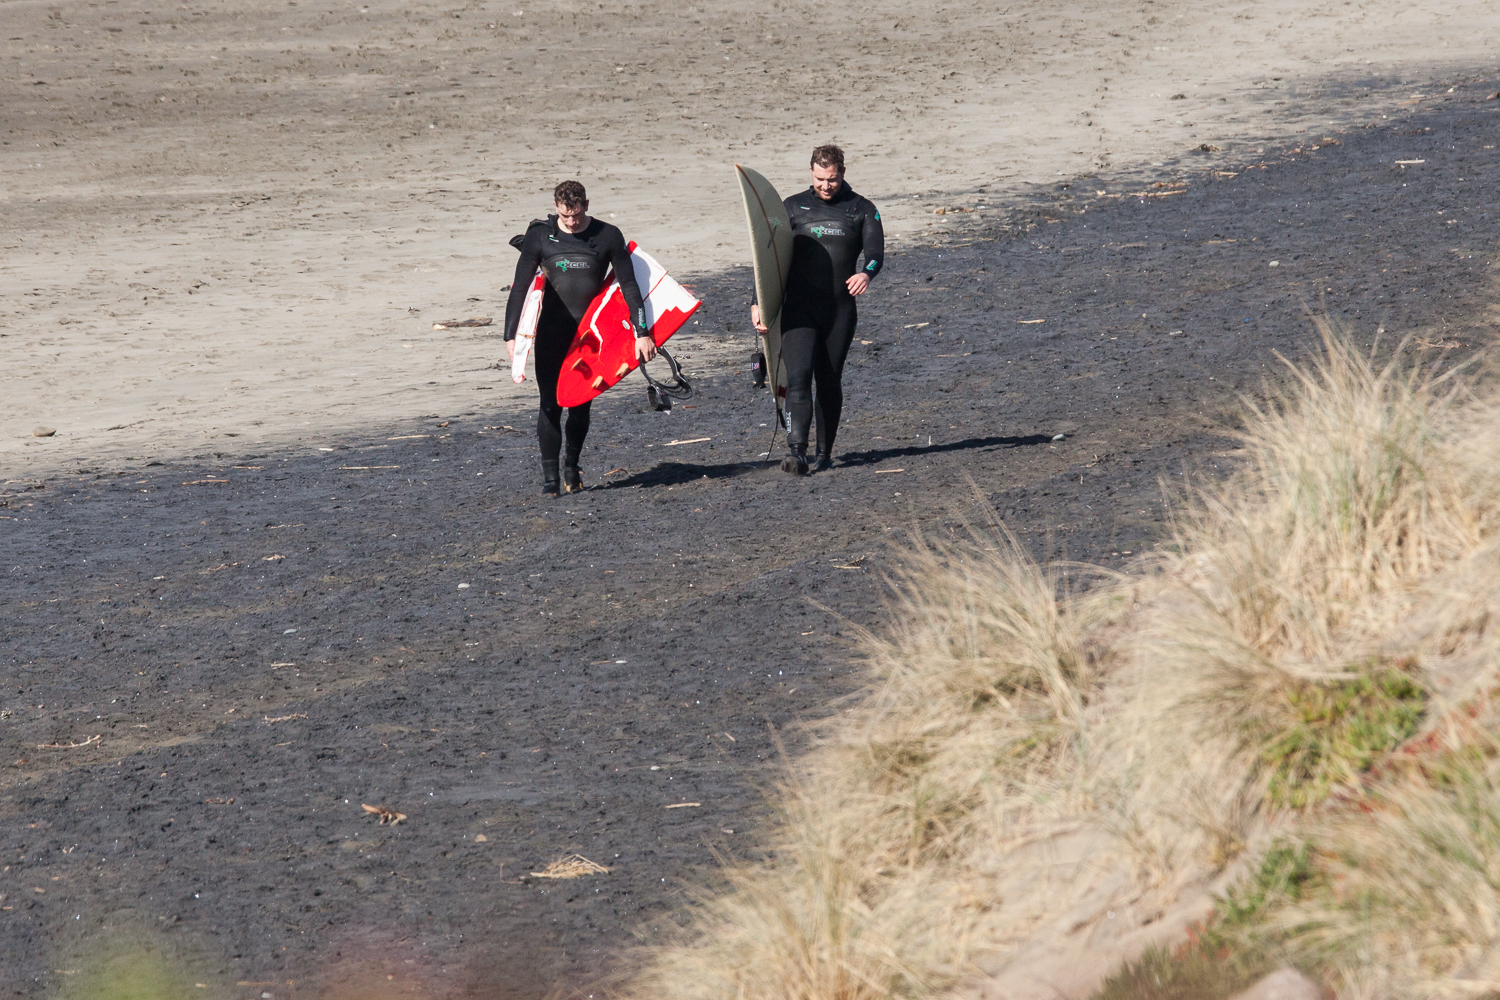 Keenan breaks his board after his first big wave at Ocean Beach, San Francisco